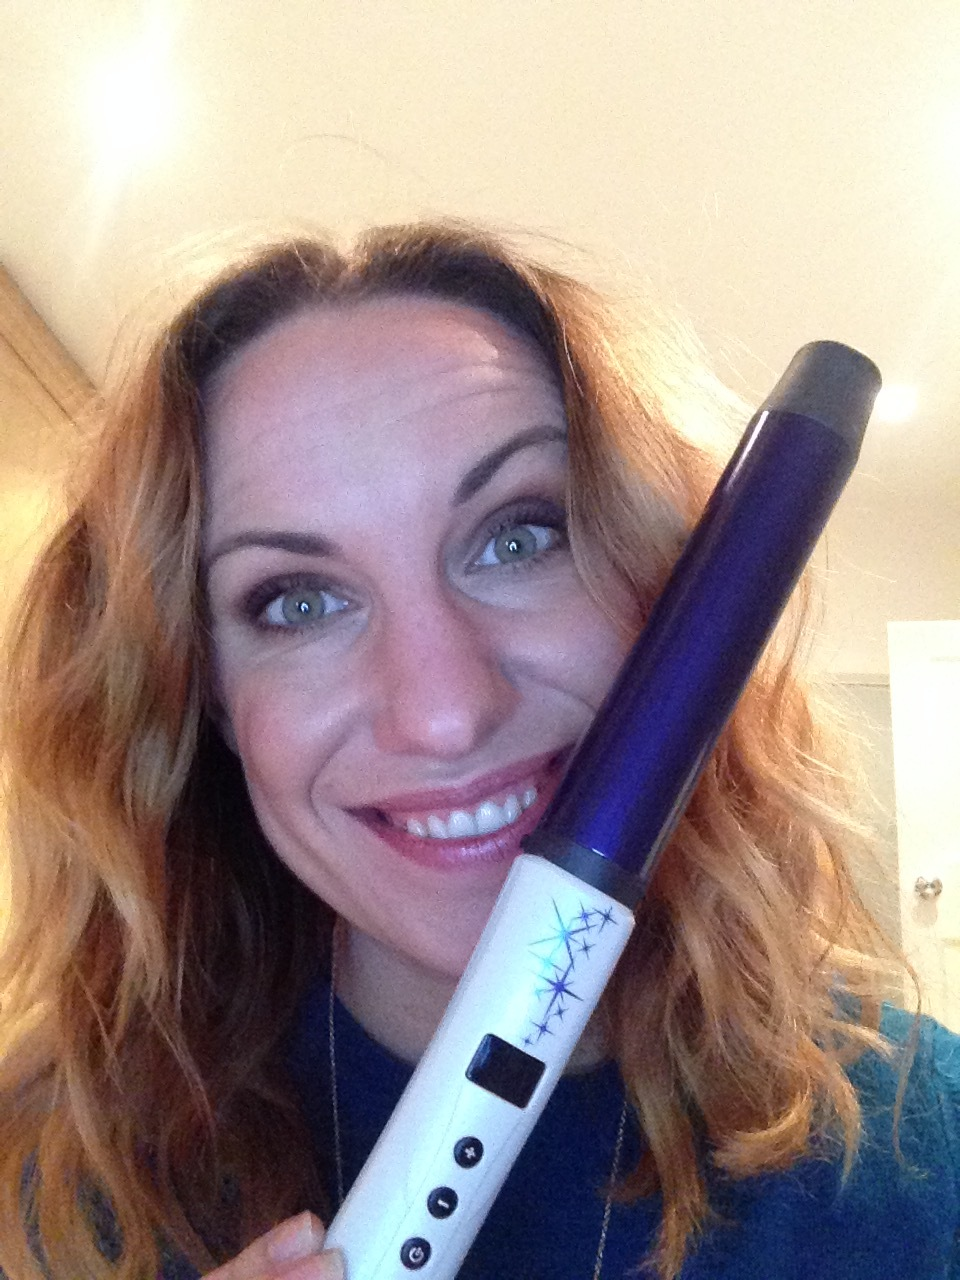 Remington Sapphie Pro Curl Hair Tong. I'd used this for my hair in this photo